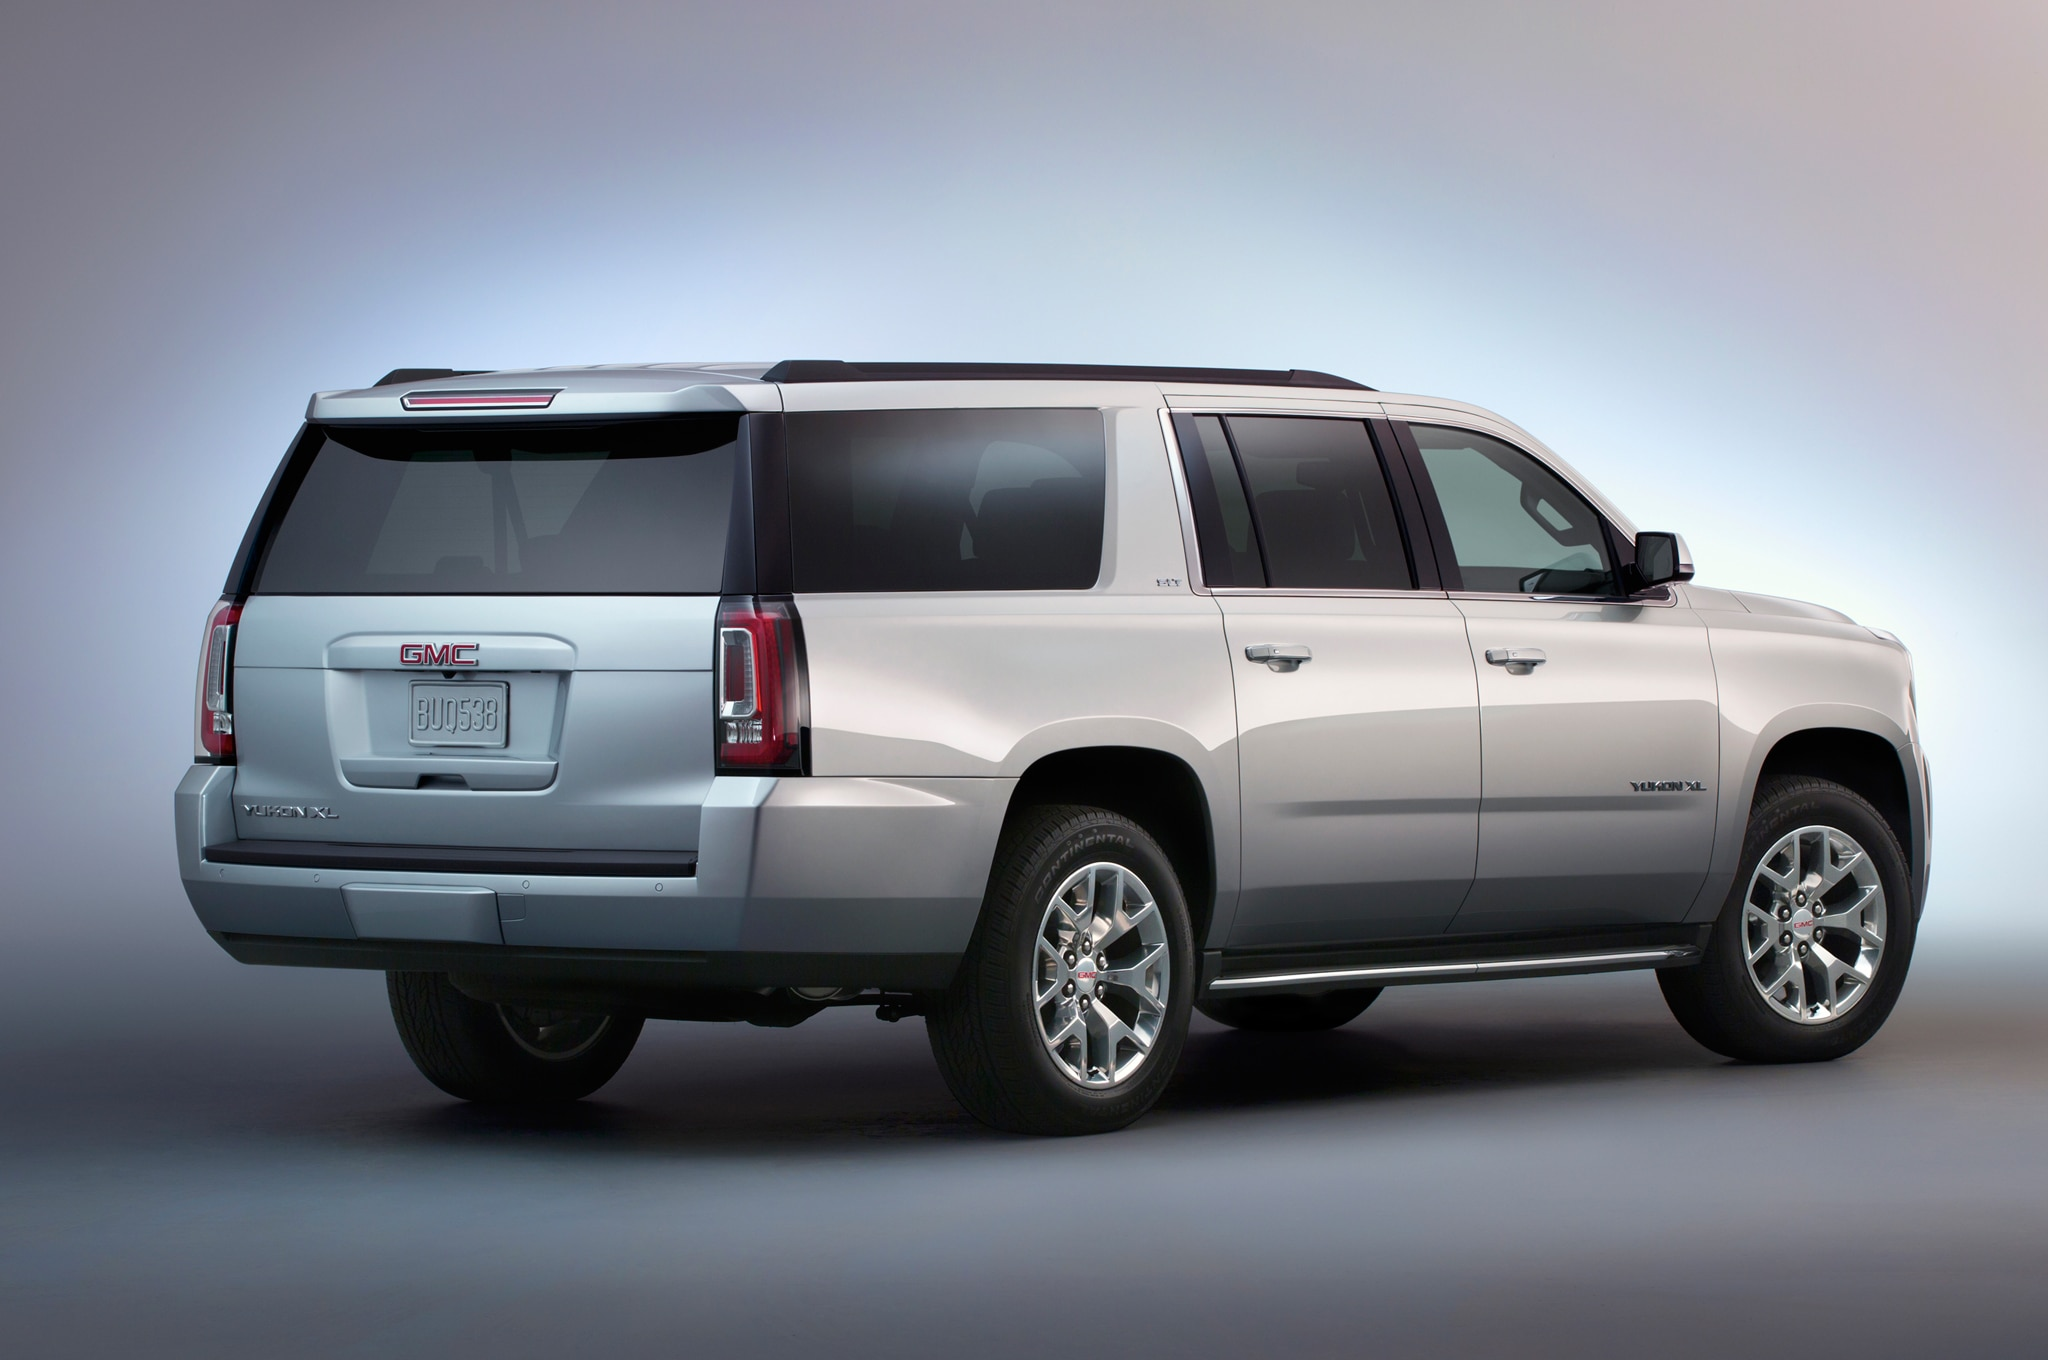 2015 GMC Yukon XL rear view